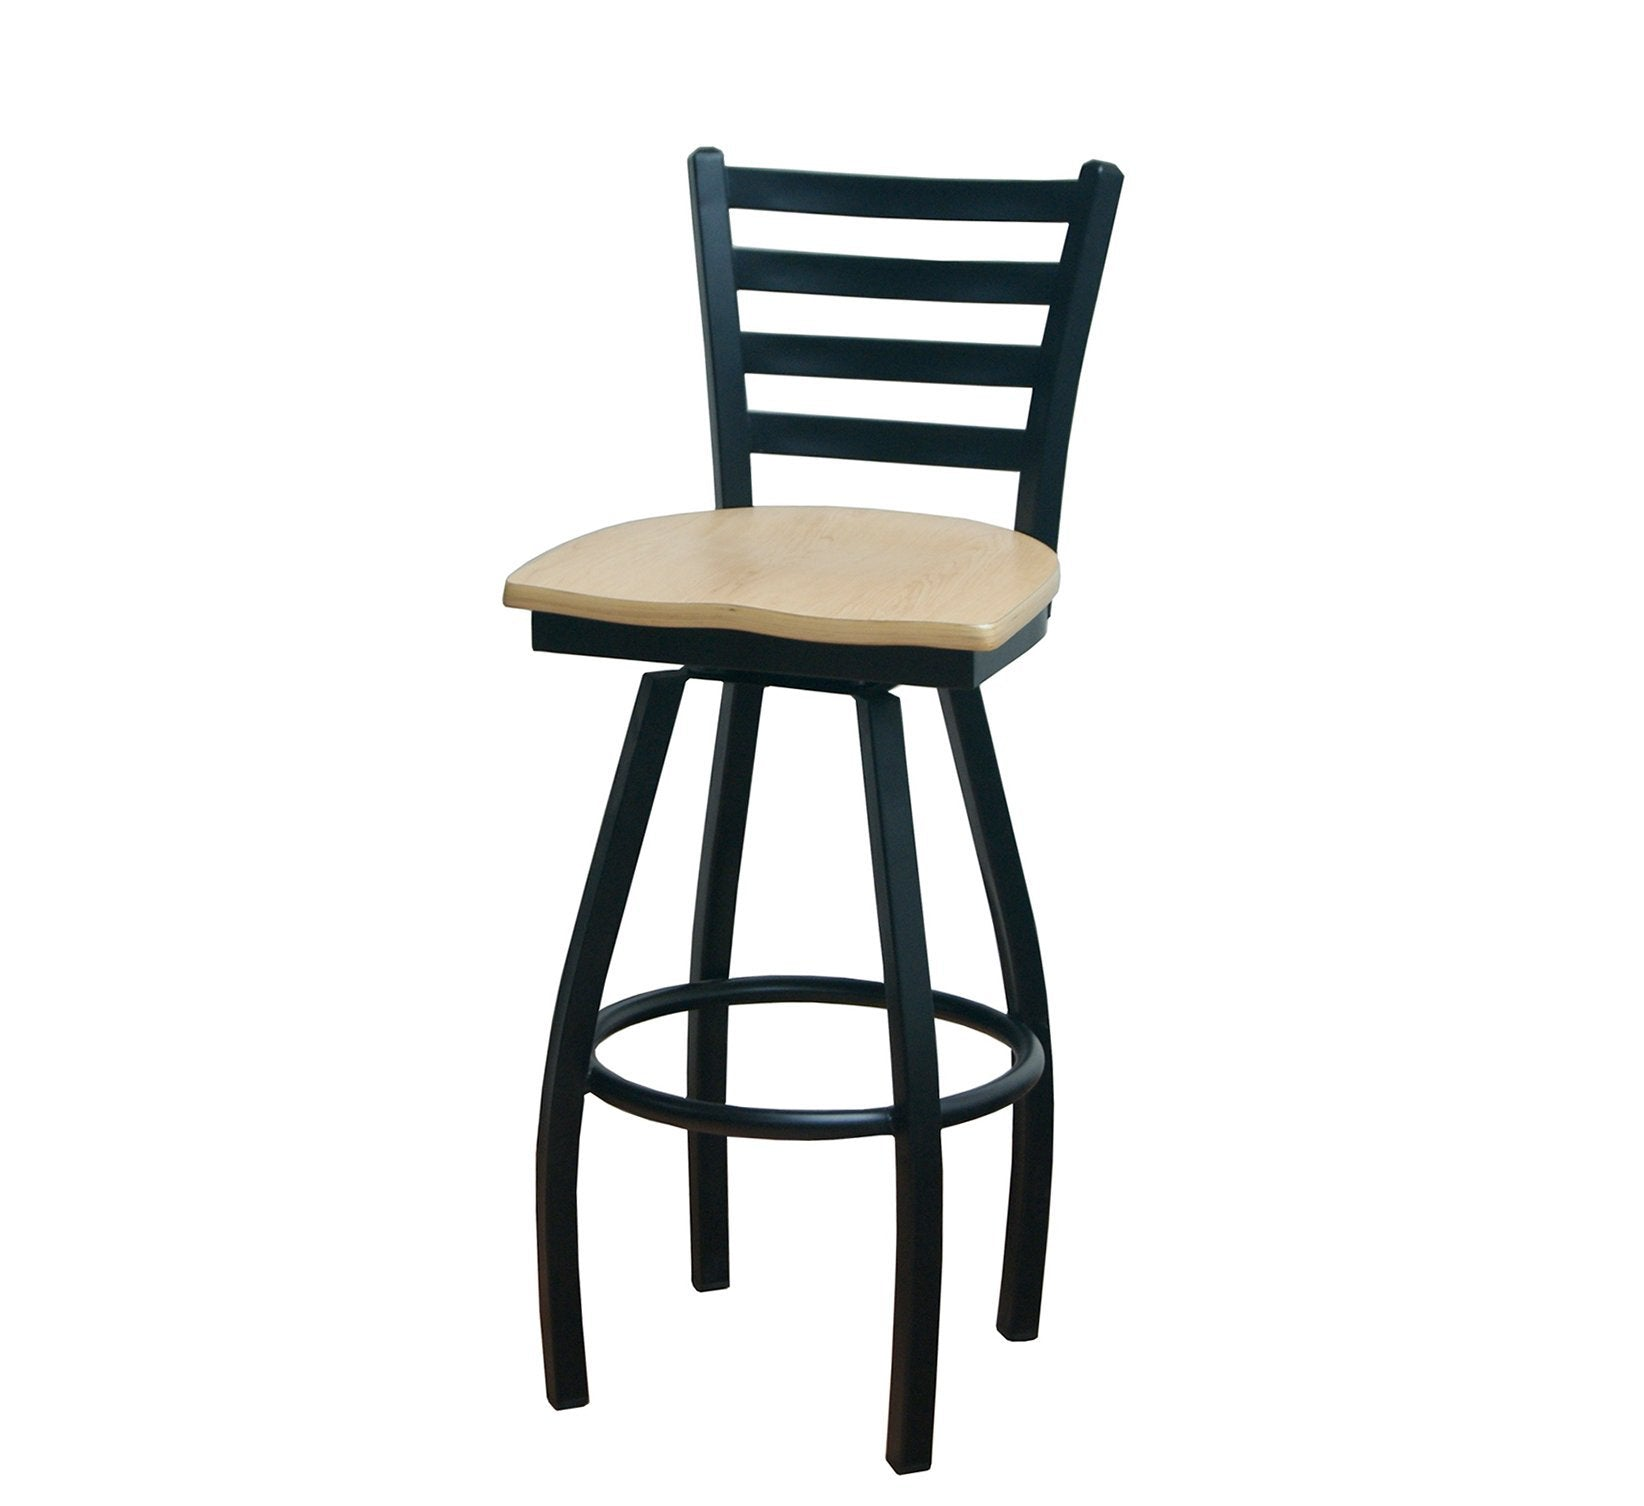 DHC 1445B-SW Ladder Back Steel Swivel Barstool, Matt Black Finish